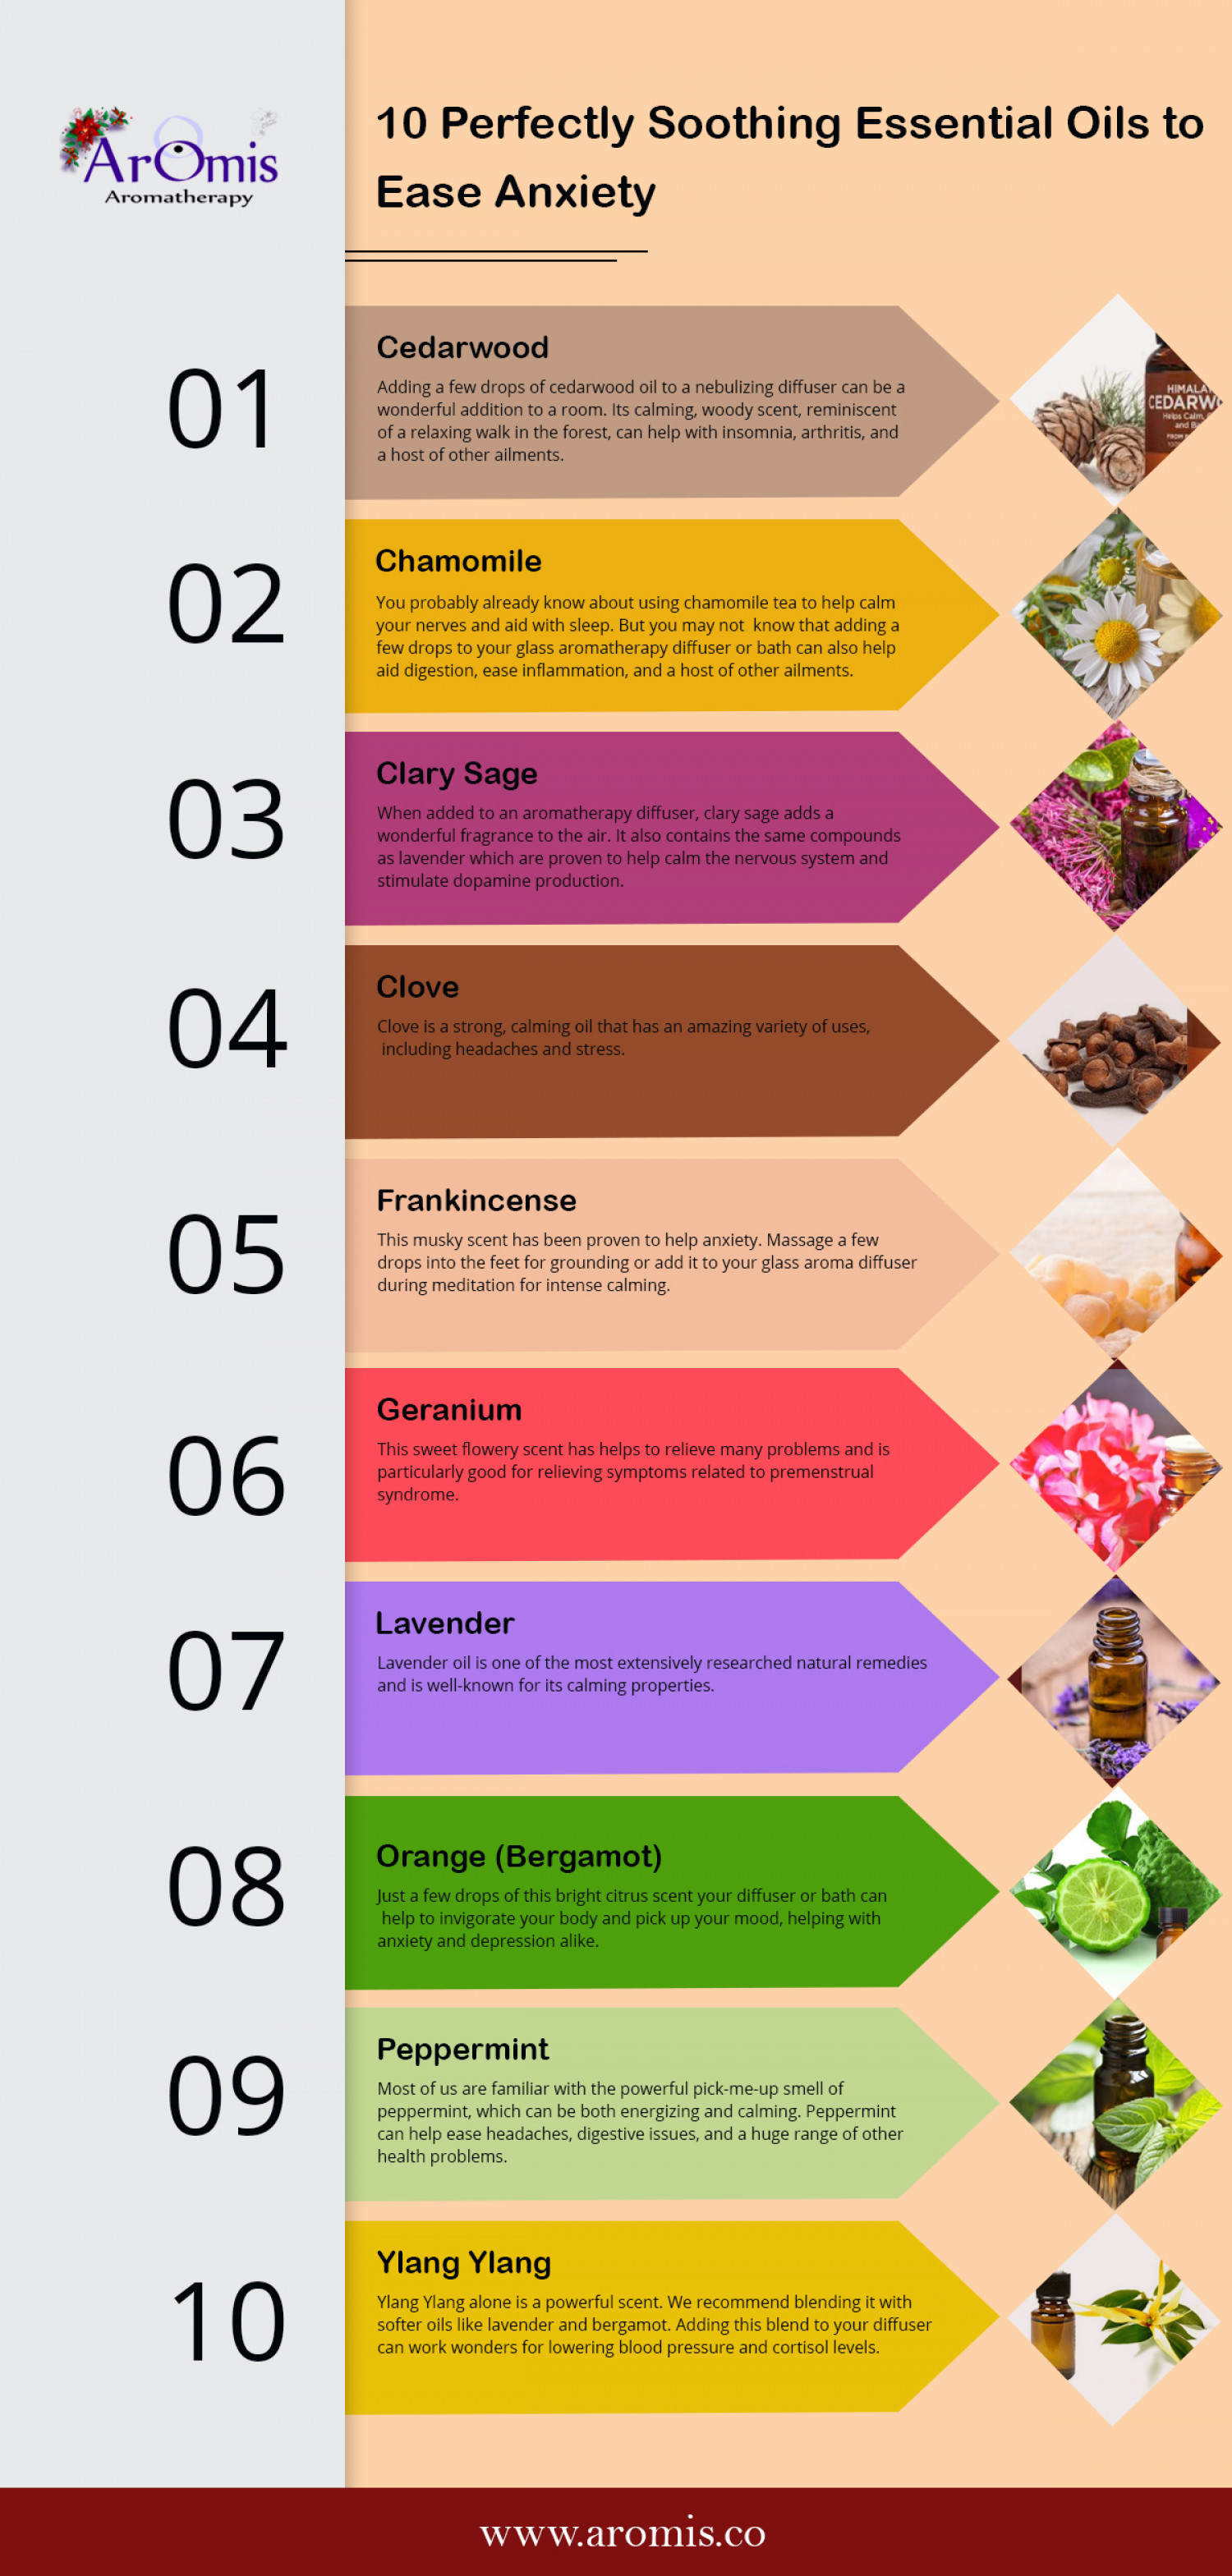 10 Perfectly Soothing Essential Oils to Ease Anxiety Infographic